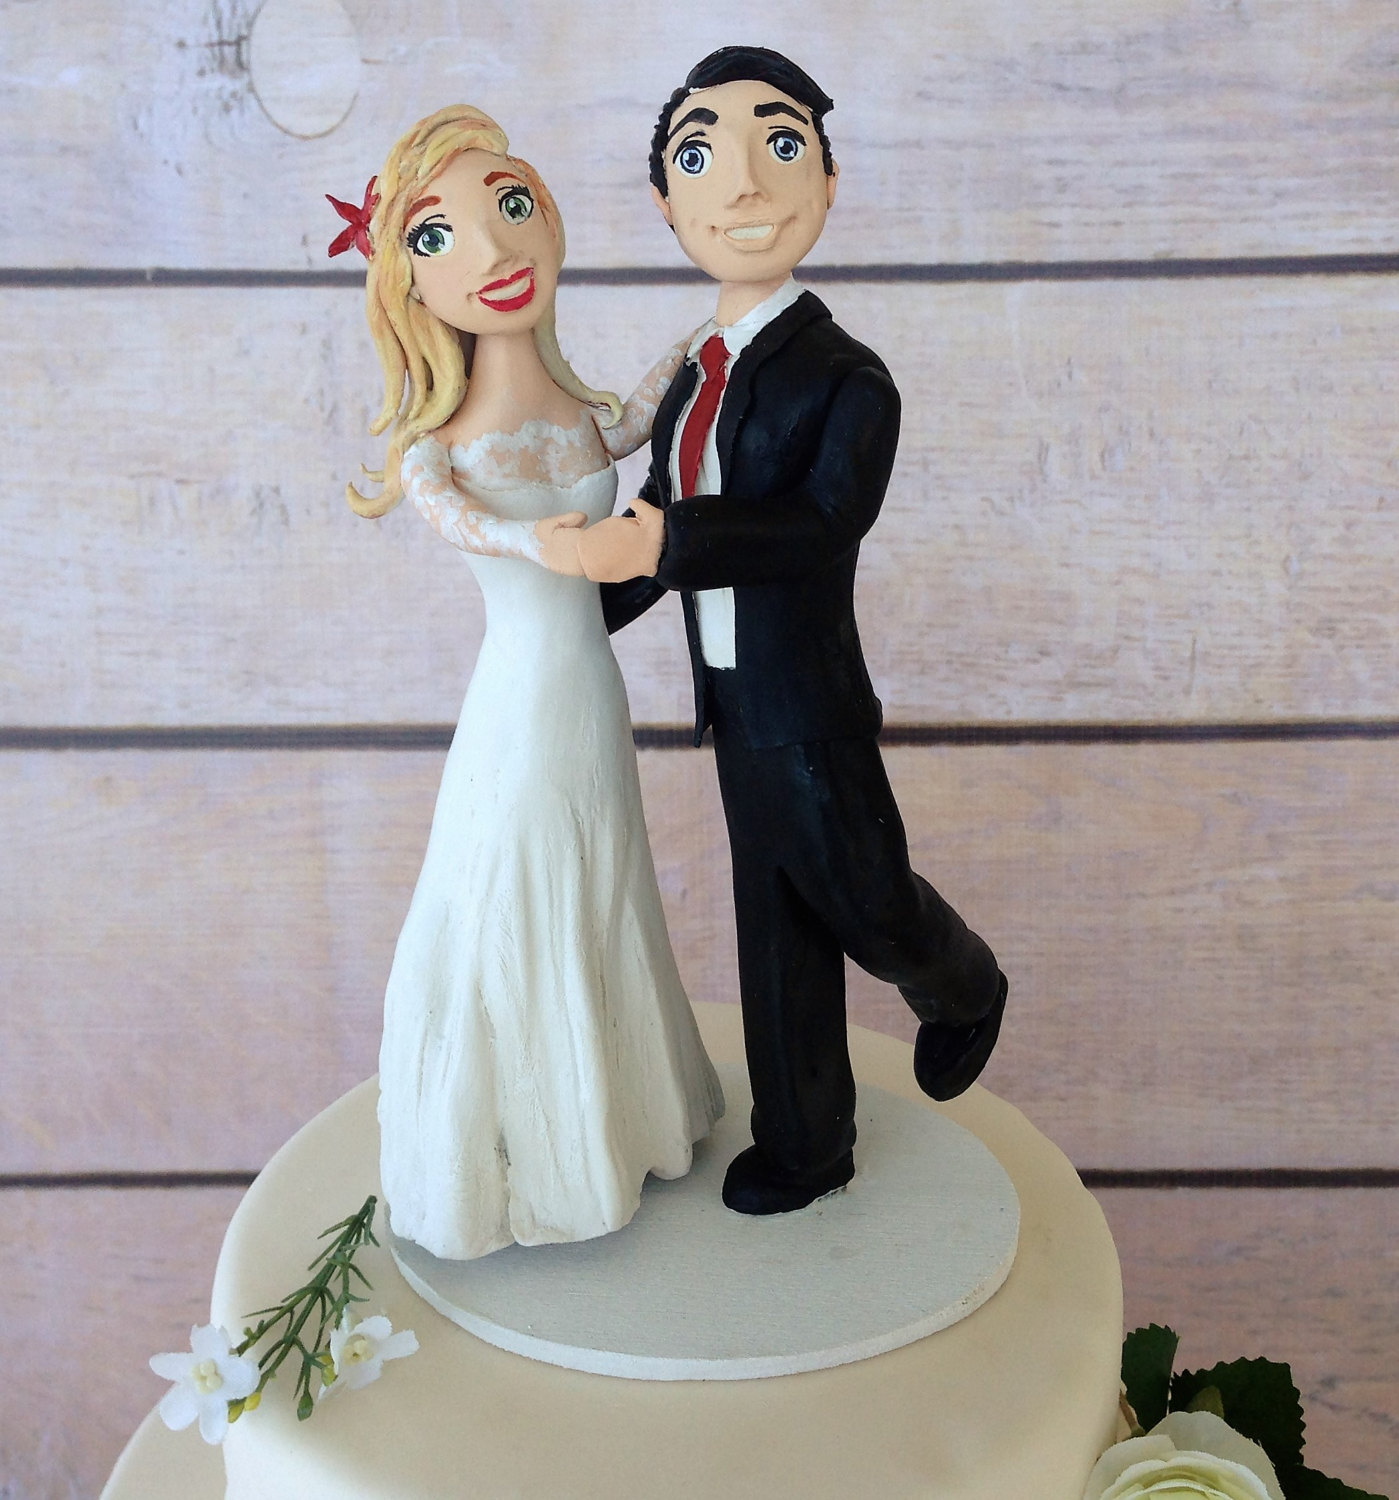 dancing bride and groom cake topper | http://emmalinebride.com/wedding/dancing-bride-and-groom-cake-topper/